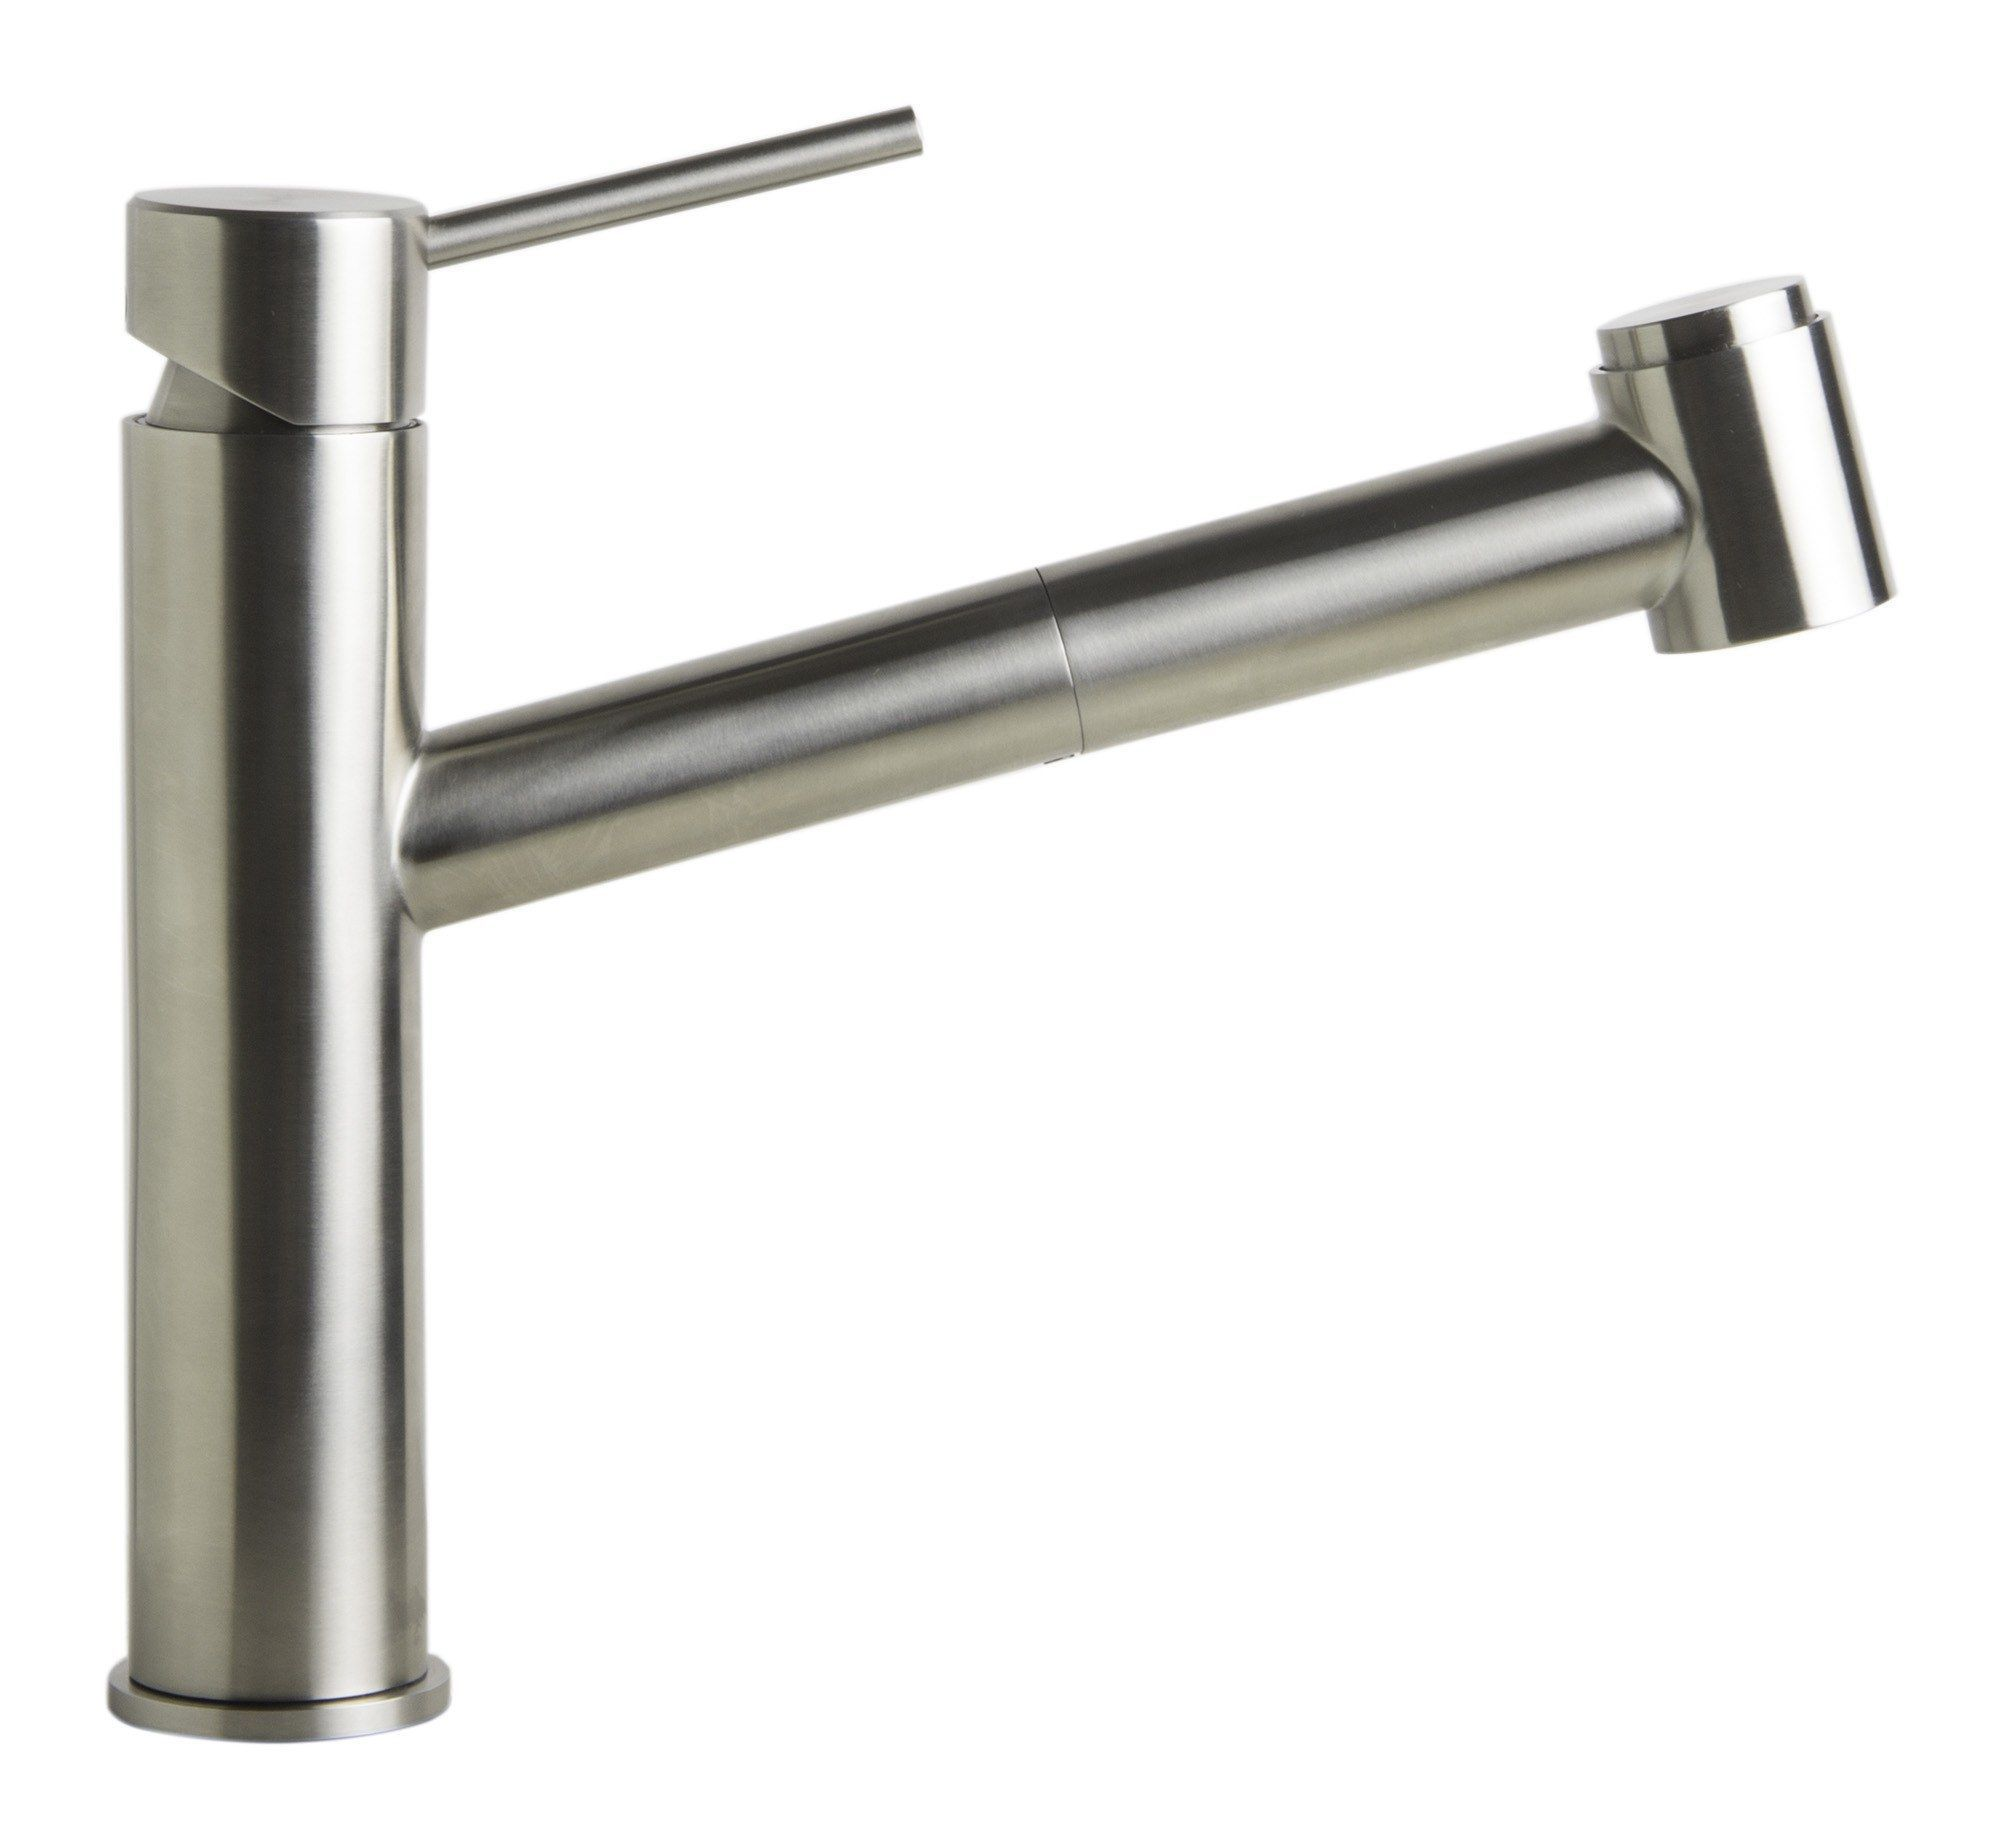 Alfi Brand Ab2203 Bss Brushed Stainless Steel Kitchen Faucet W Pull